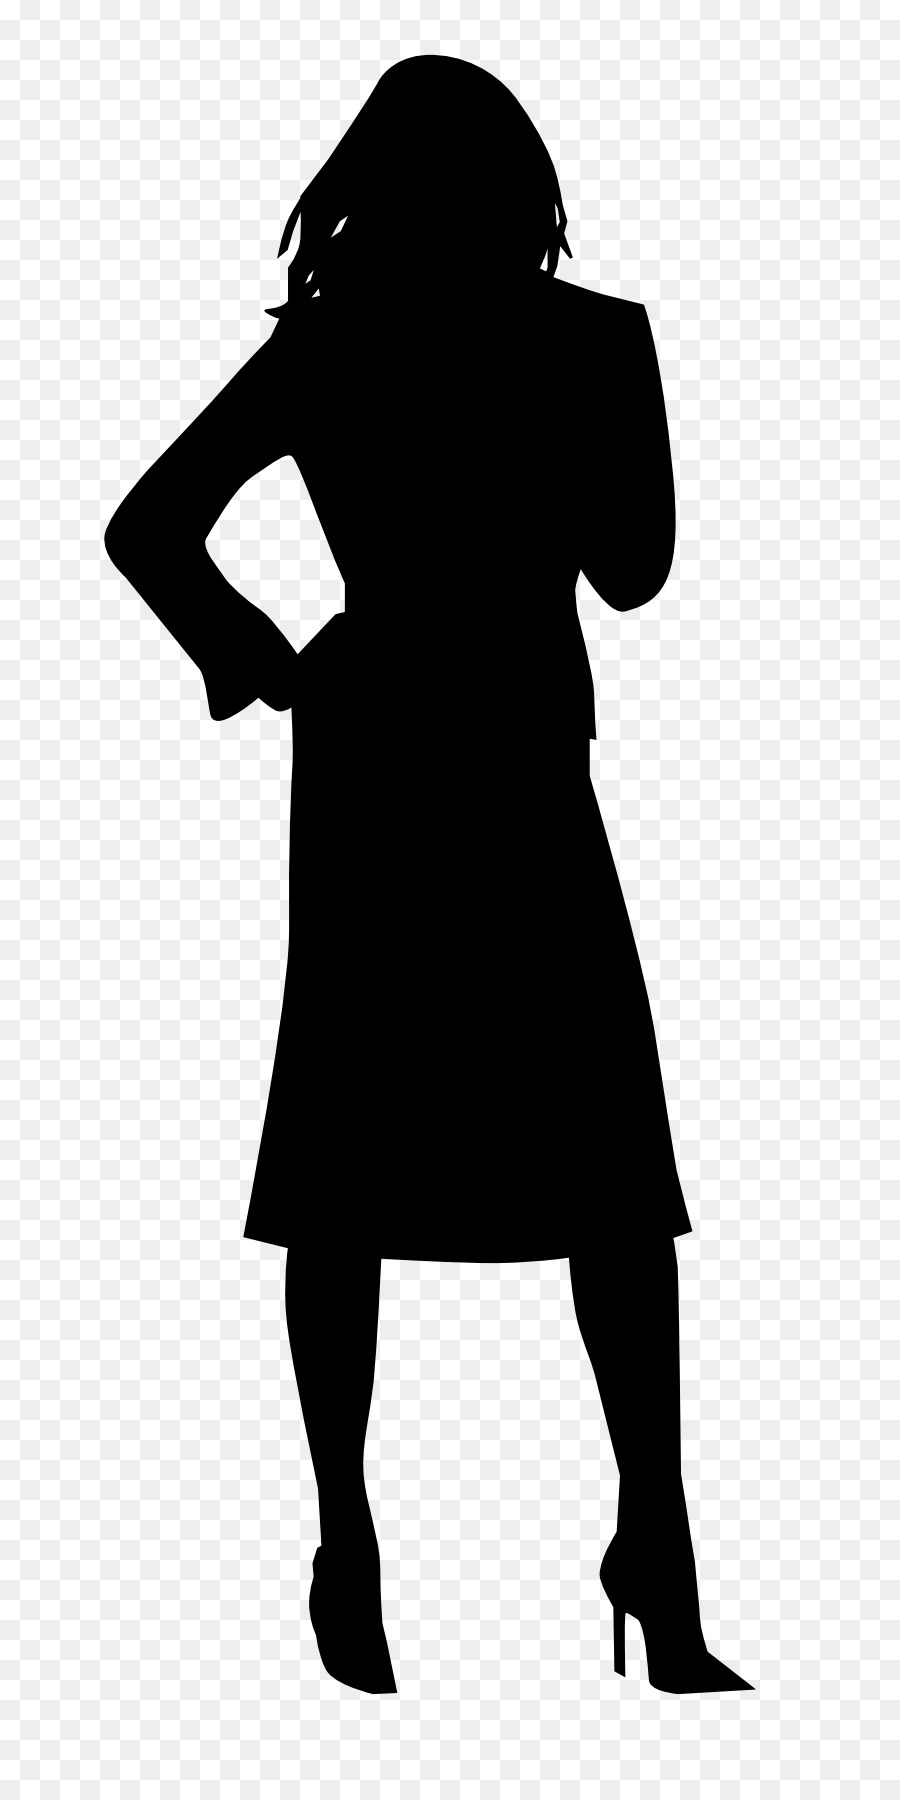 900x1800 Black Woman Model Silhouette Clip Art